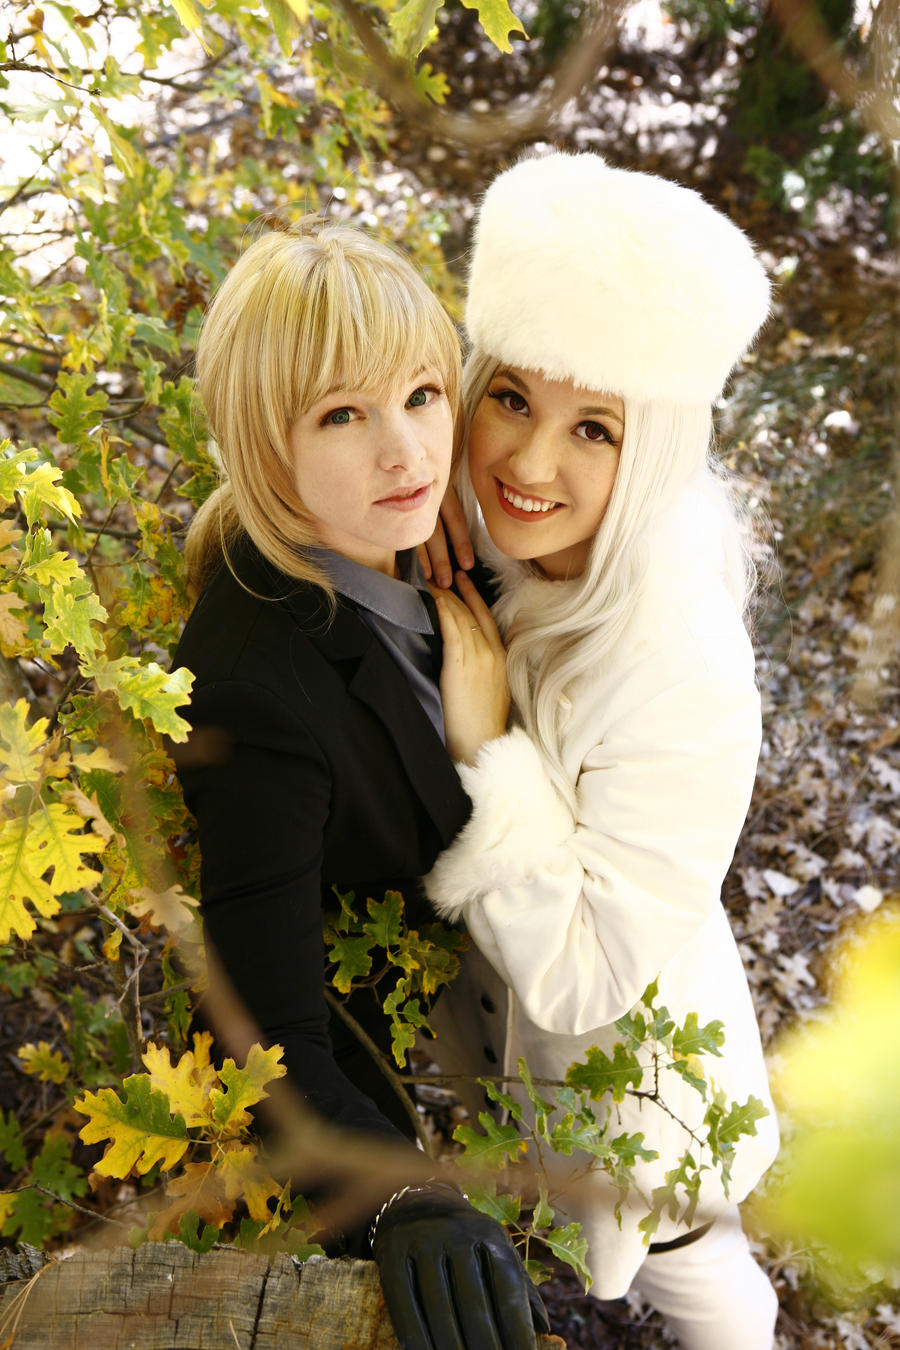 Saber and Iris: Before the Spring by FoxGlovesCosplay